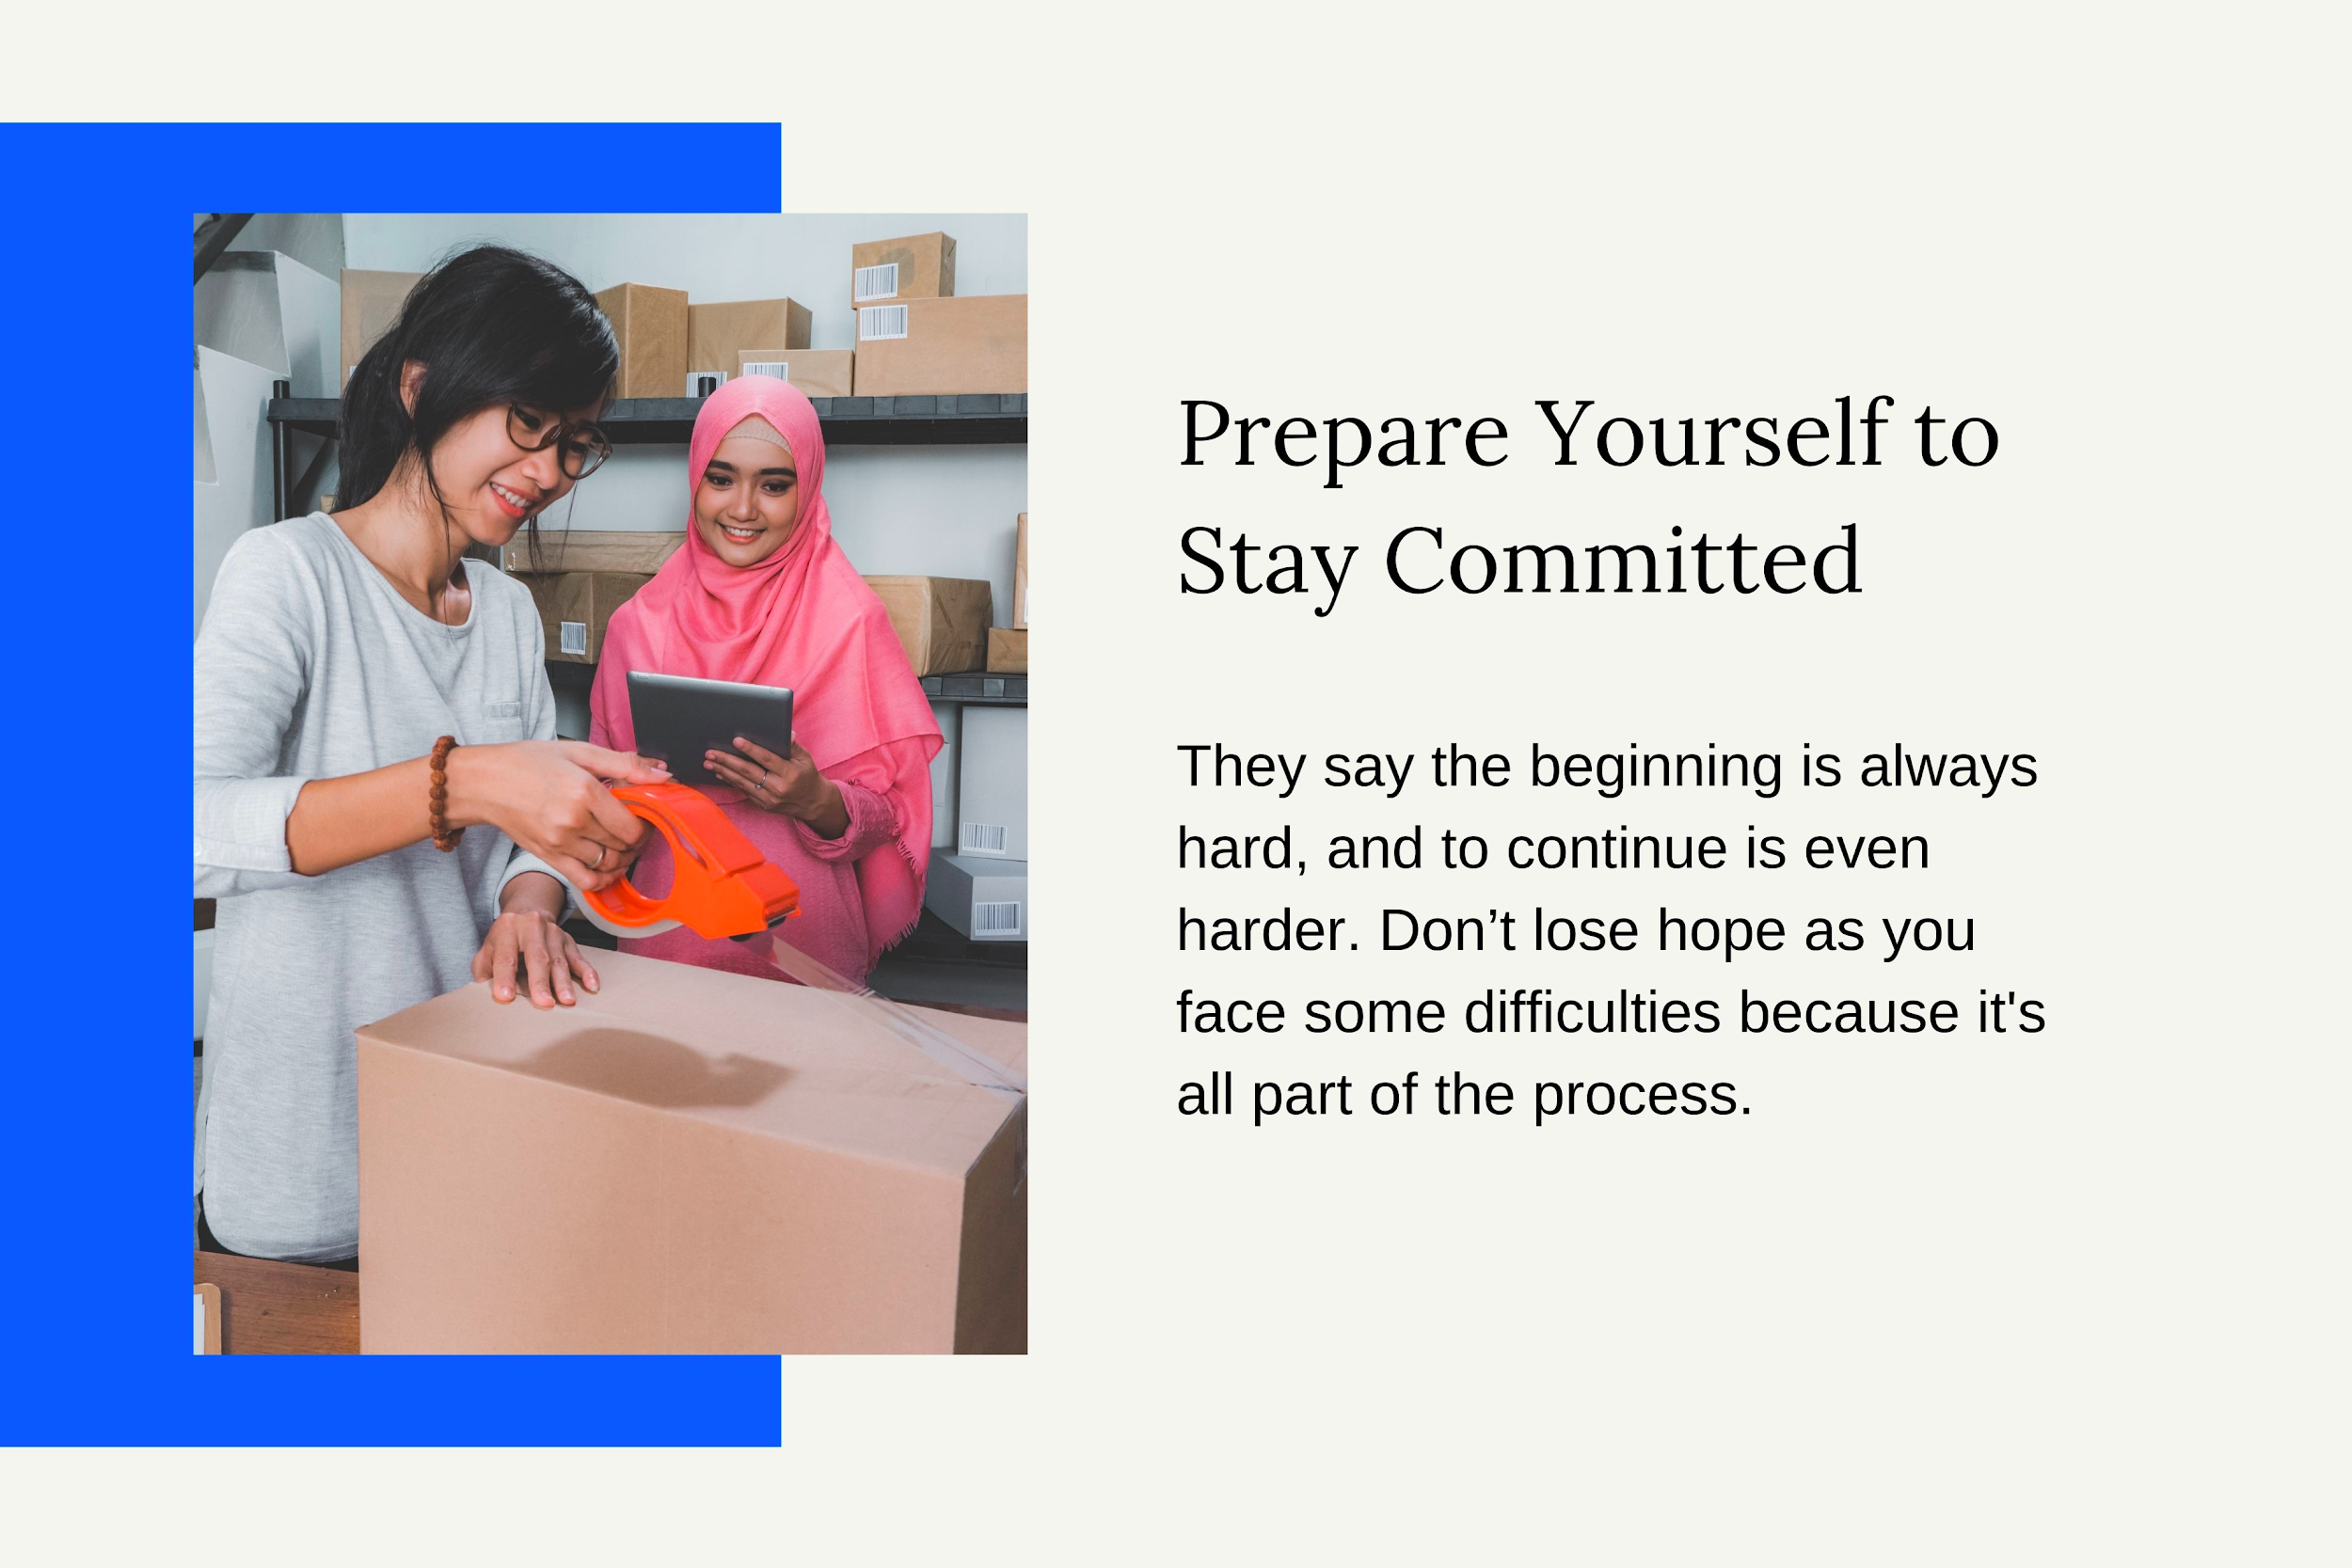 Prepare Yourself to Stay Committed